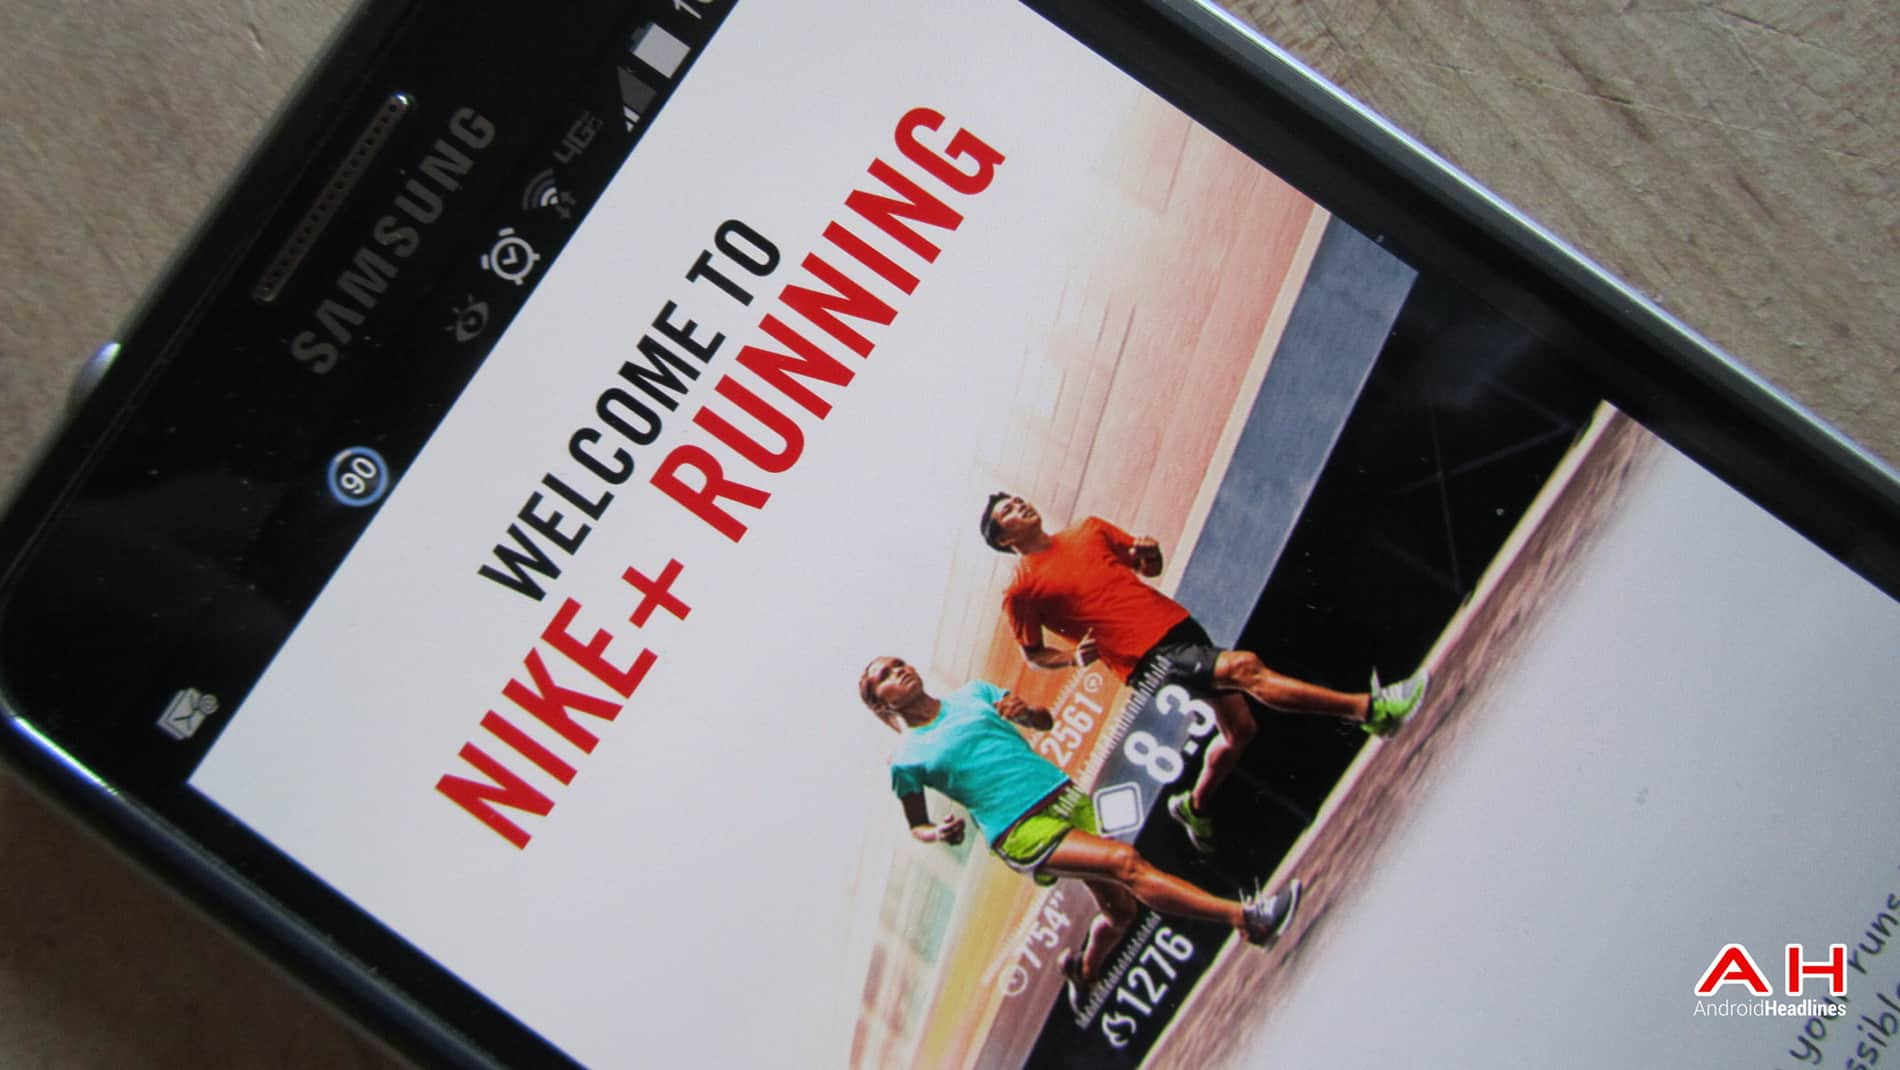 Samsung and Nike Partner to Bring us the Nike+ Running App